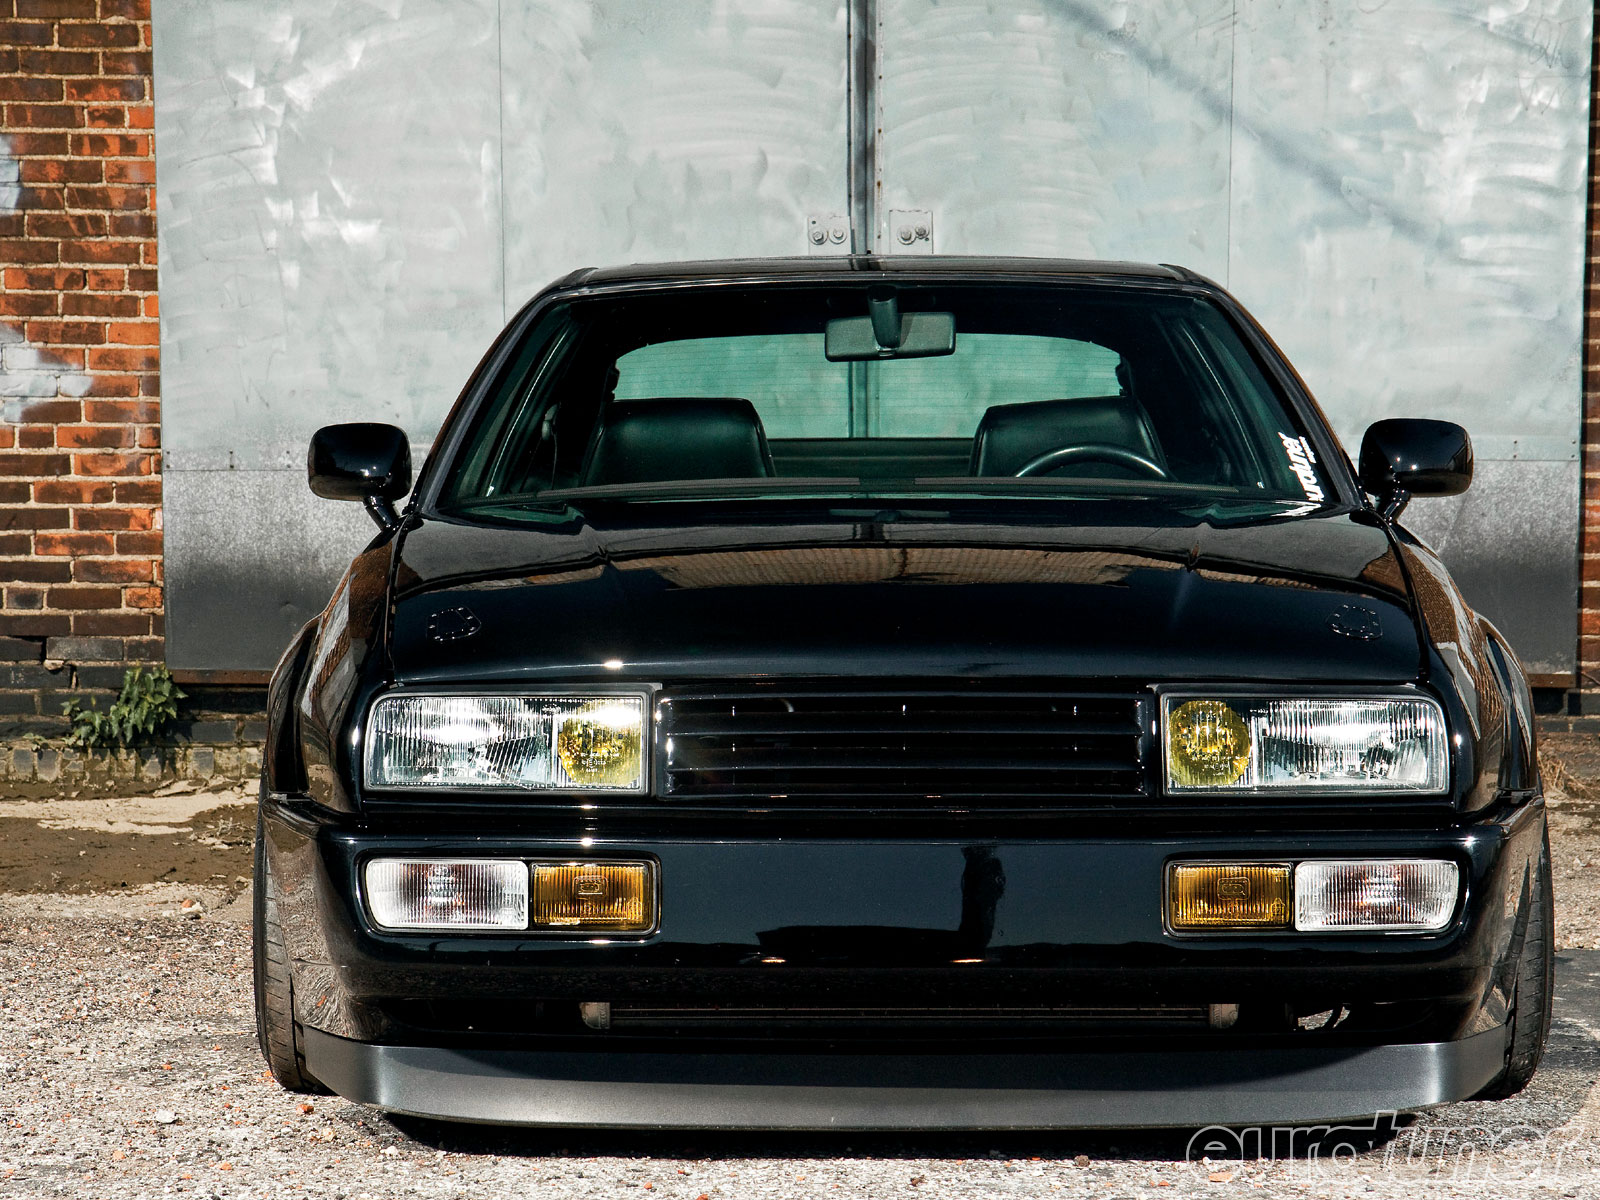 1993 volkswagen corrado information and photos zombiedrive. Black Bedroom Furniture Sets. Home Design Ideas